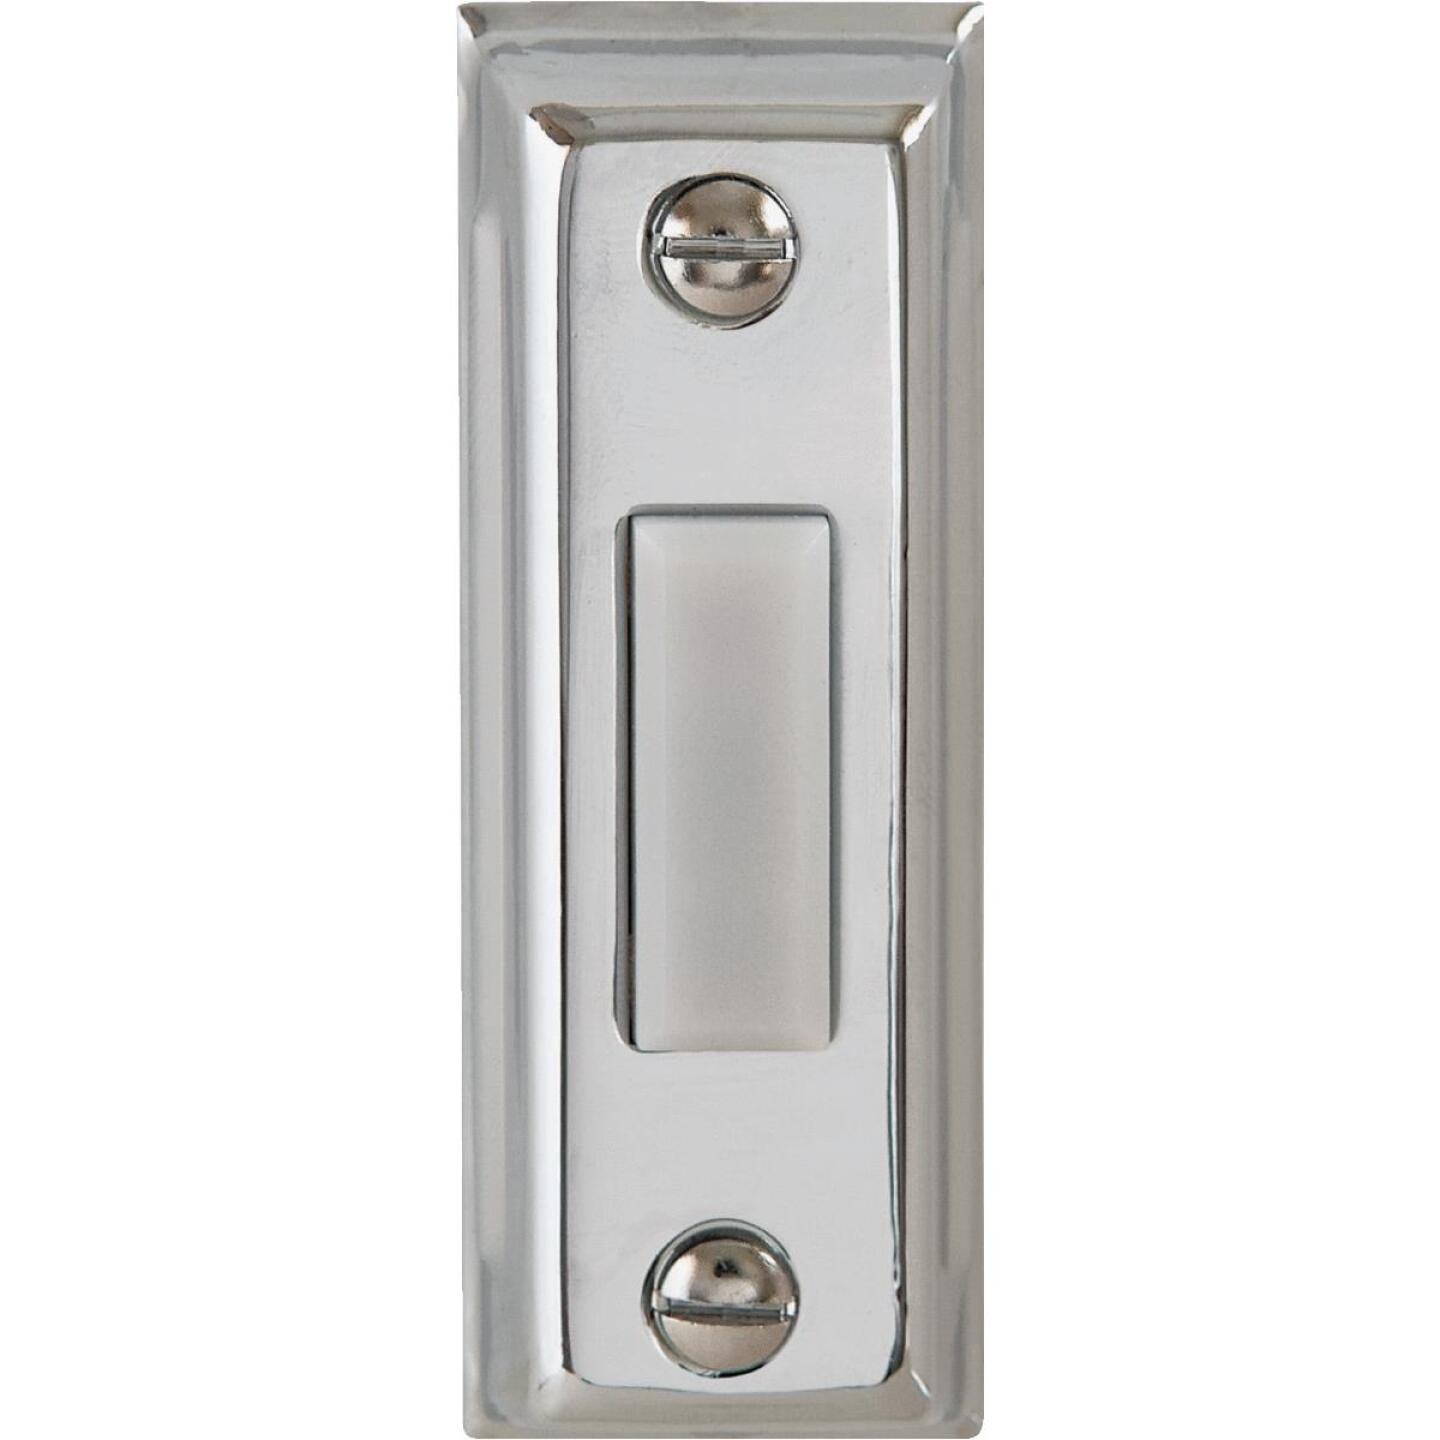 IQ America Wired Silver Rectangular Design Lighted Doorbell Push-Button Image 1